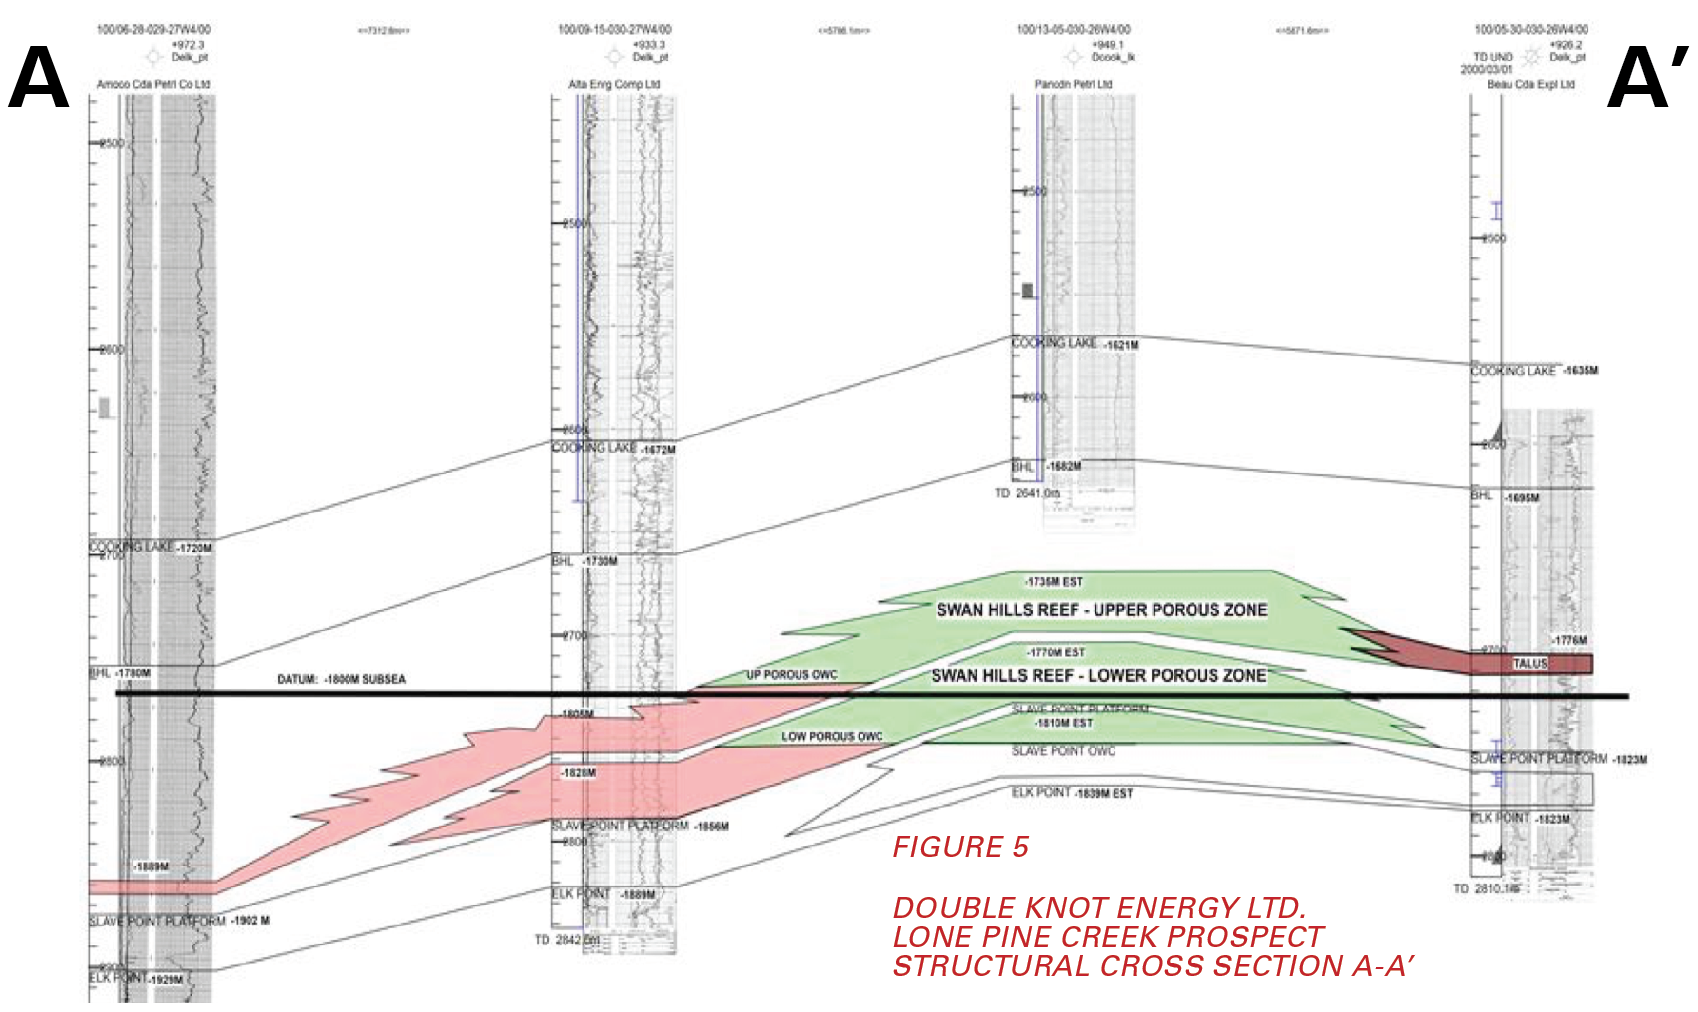 FIGURE 5 DOUBLE KNOT ENERGY LTD. LONE PINE CREEK PROSPECT STRUCTURAL CROSS SECTION A-A'